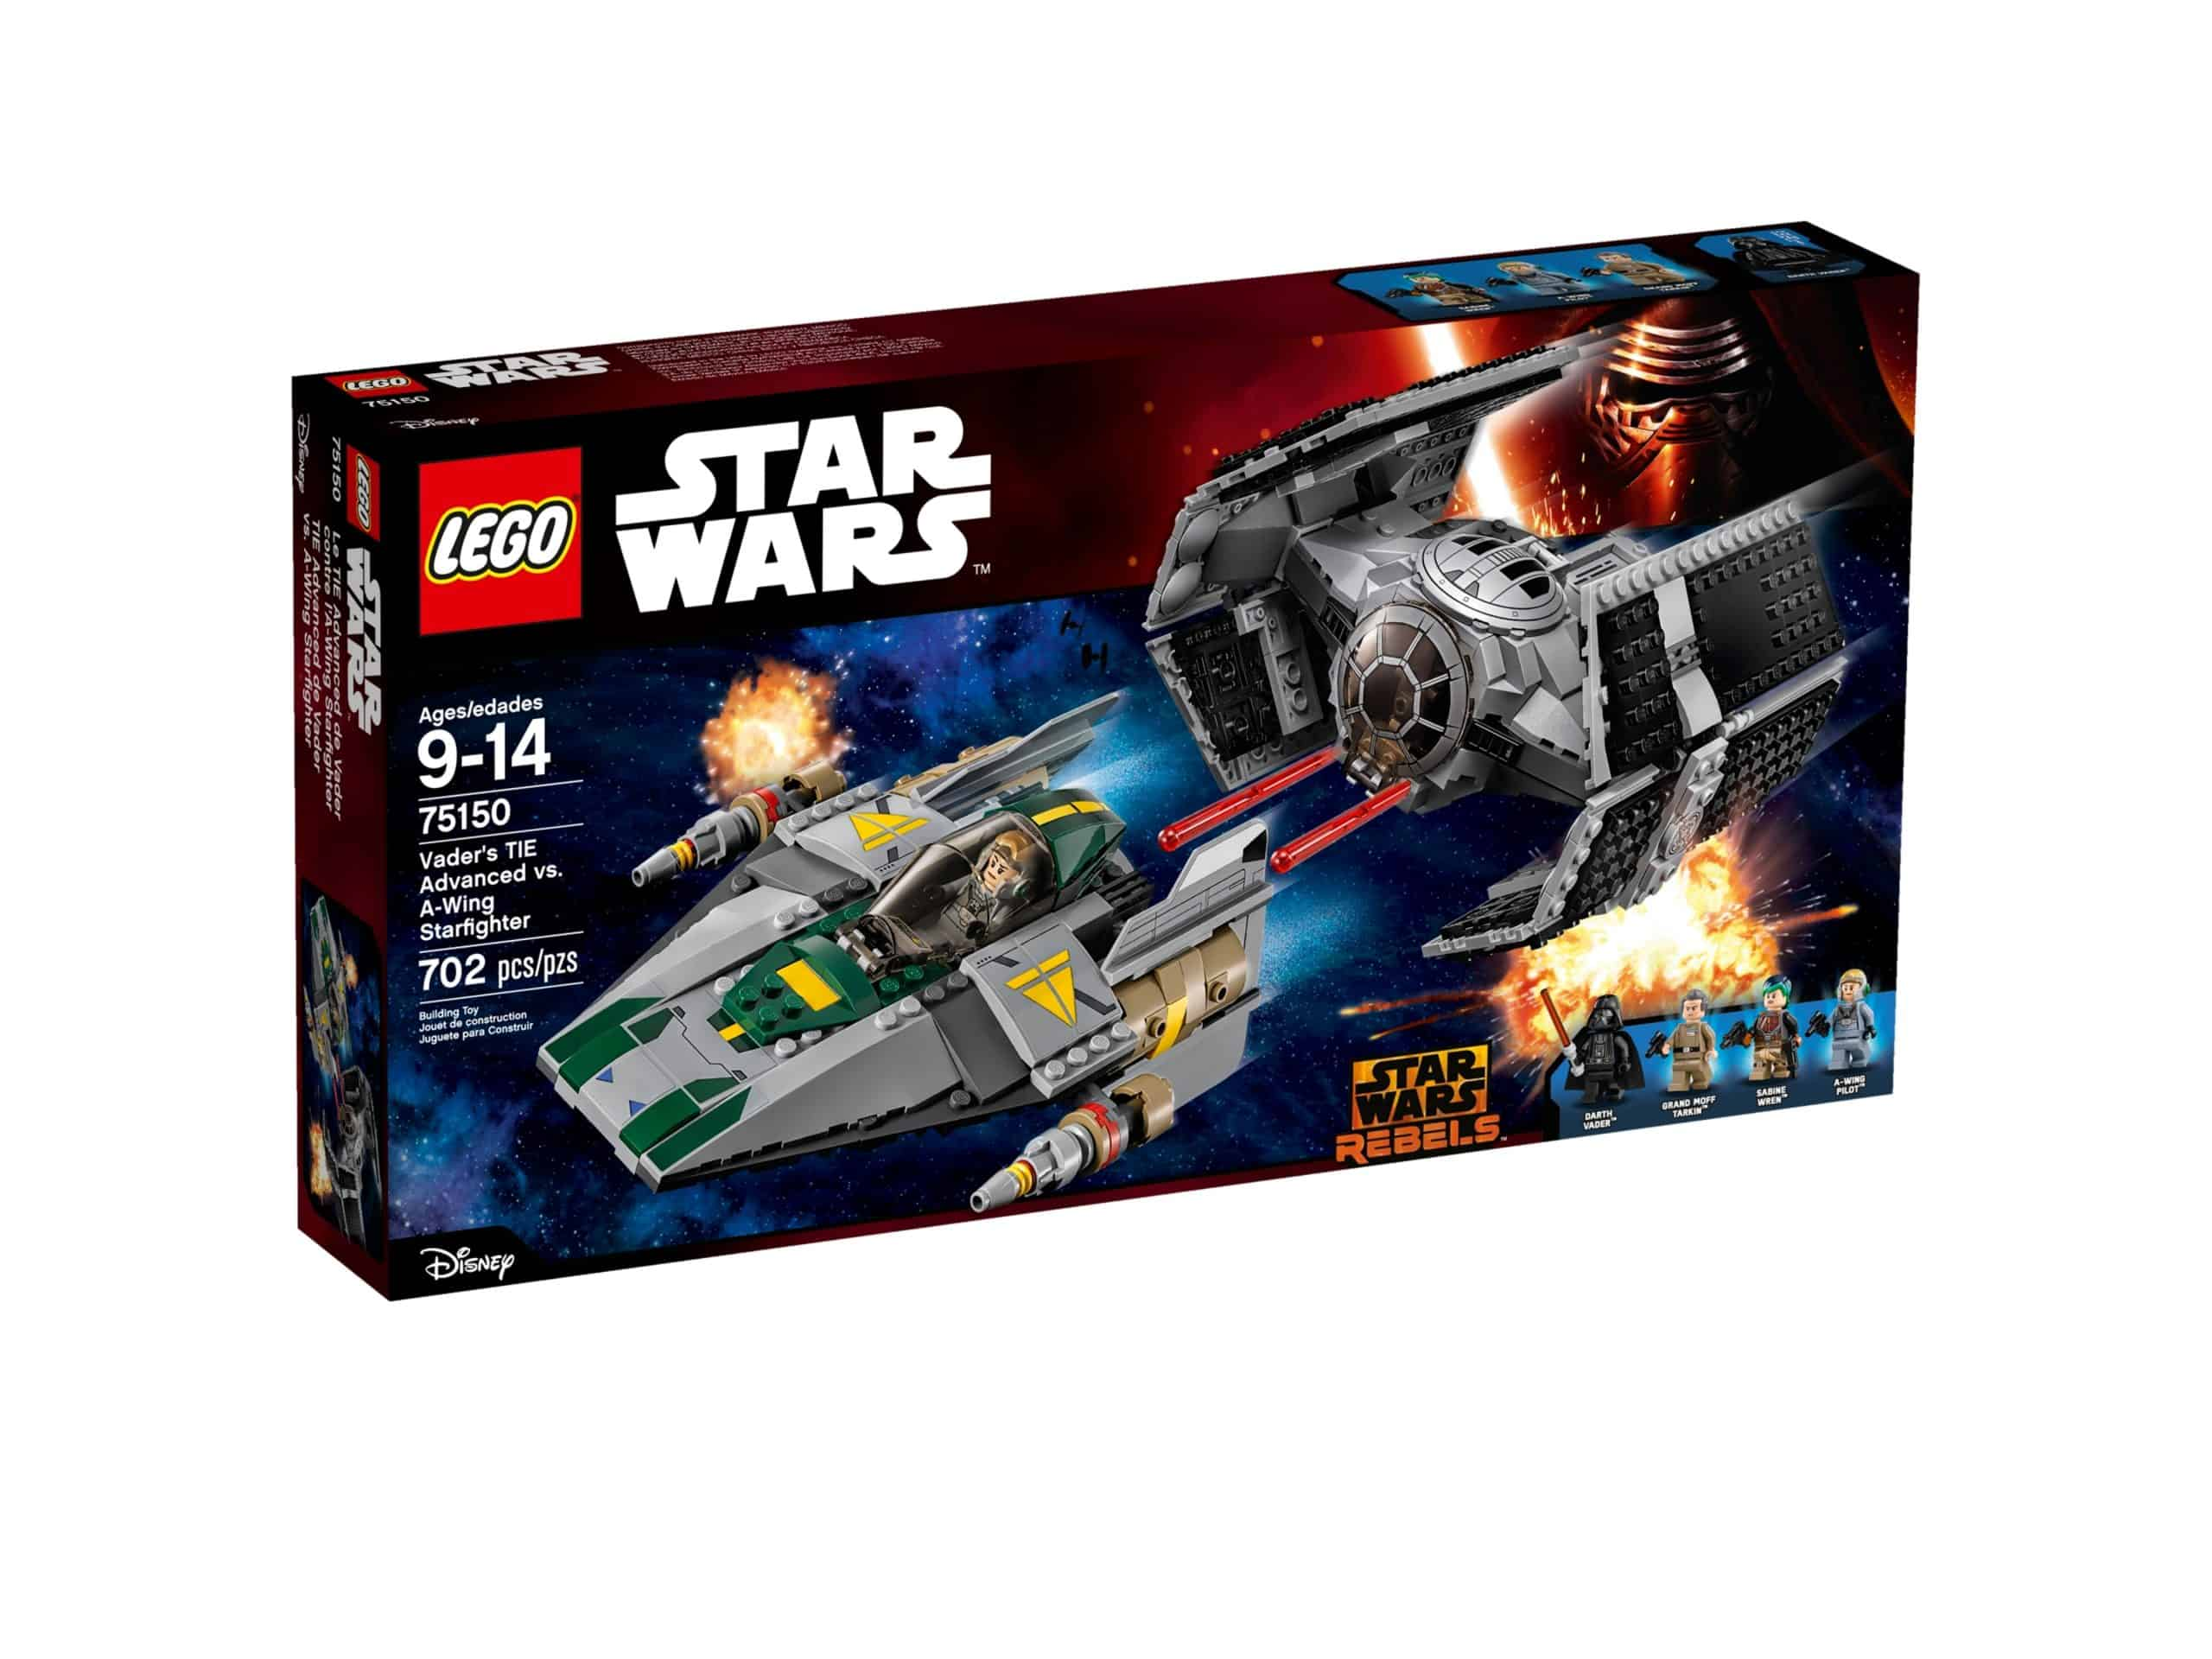 lego 75150 vaders tie advanced vs a wing starfighter scaled